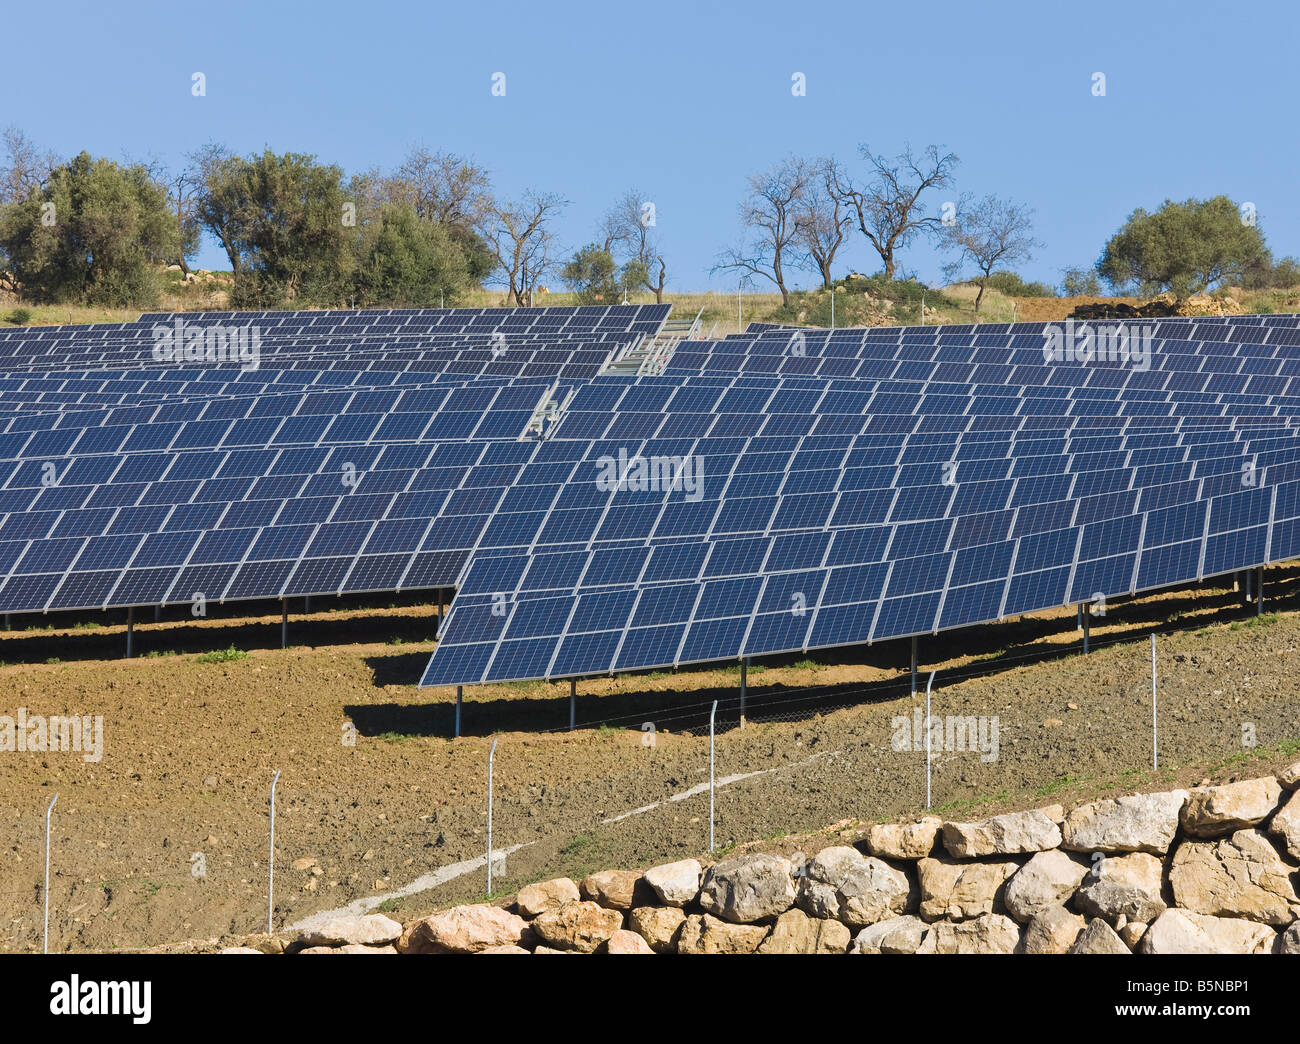 Photovoltaic or solar cells used to collect solar energy, Casabermeja, Spain - Stock Image